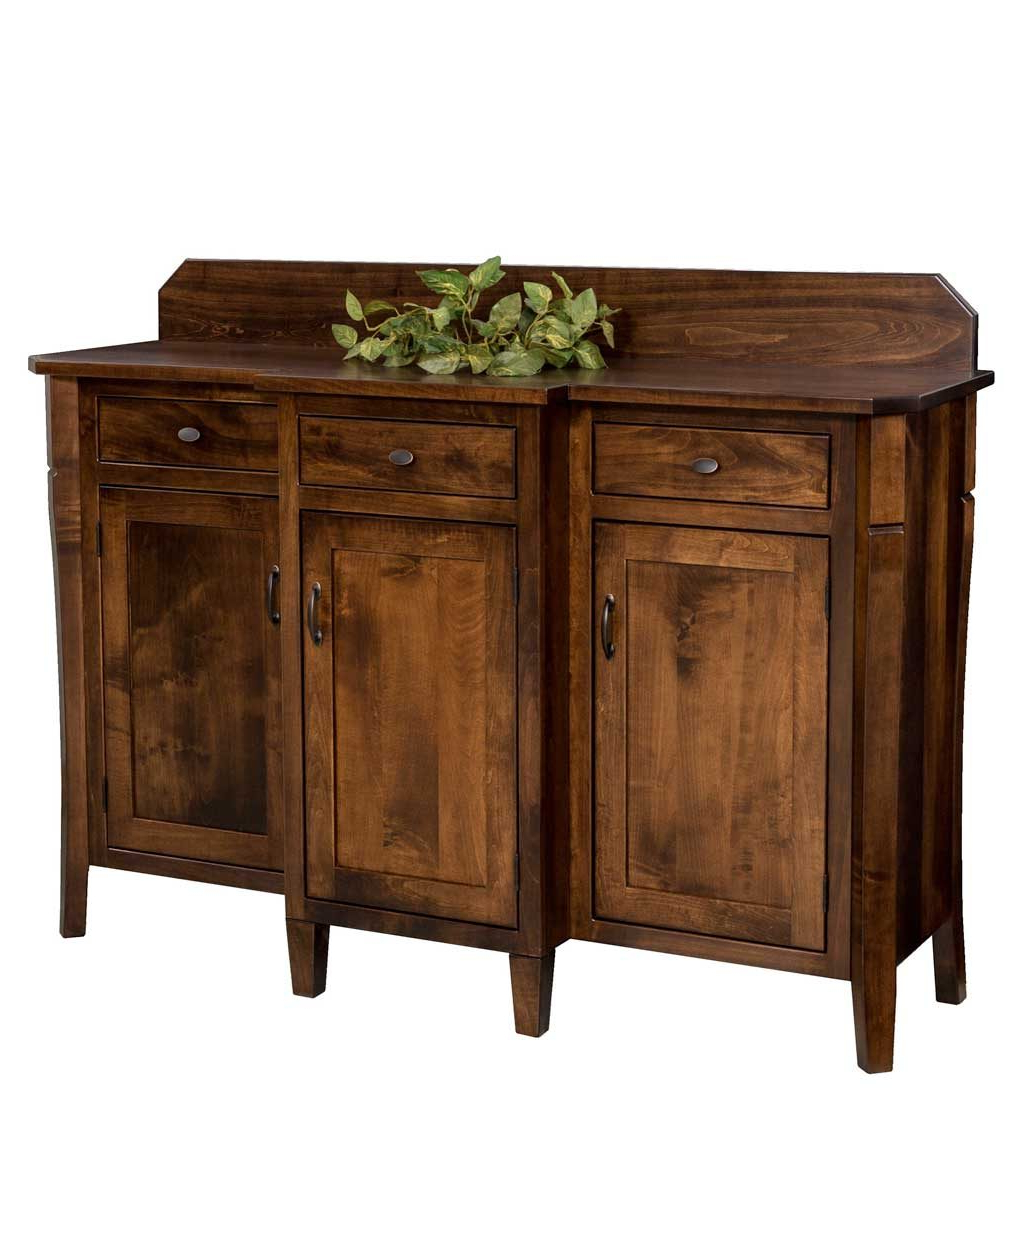 2019 Candice Ii Sideboards In Candice Sideboard – Amish Direct Furniture (View 2 of 20)